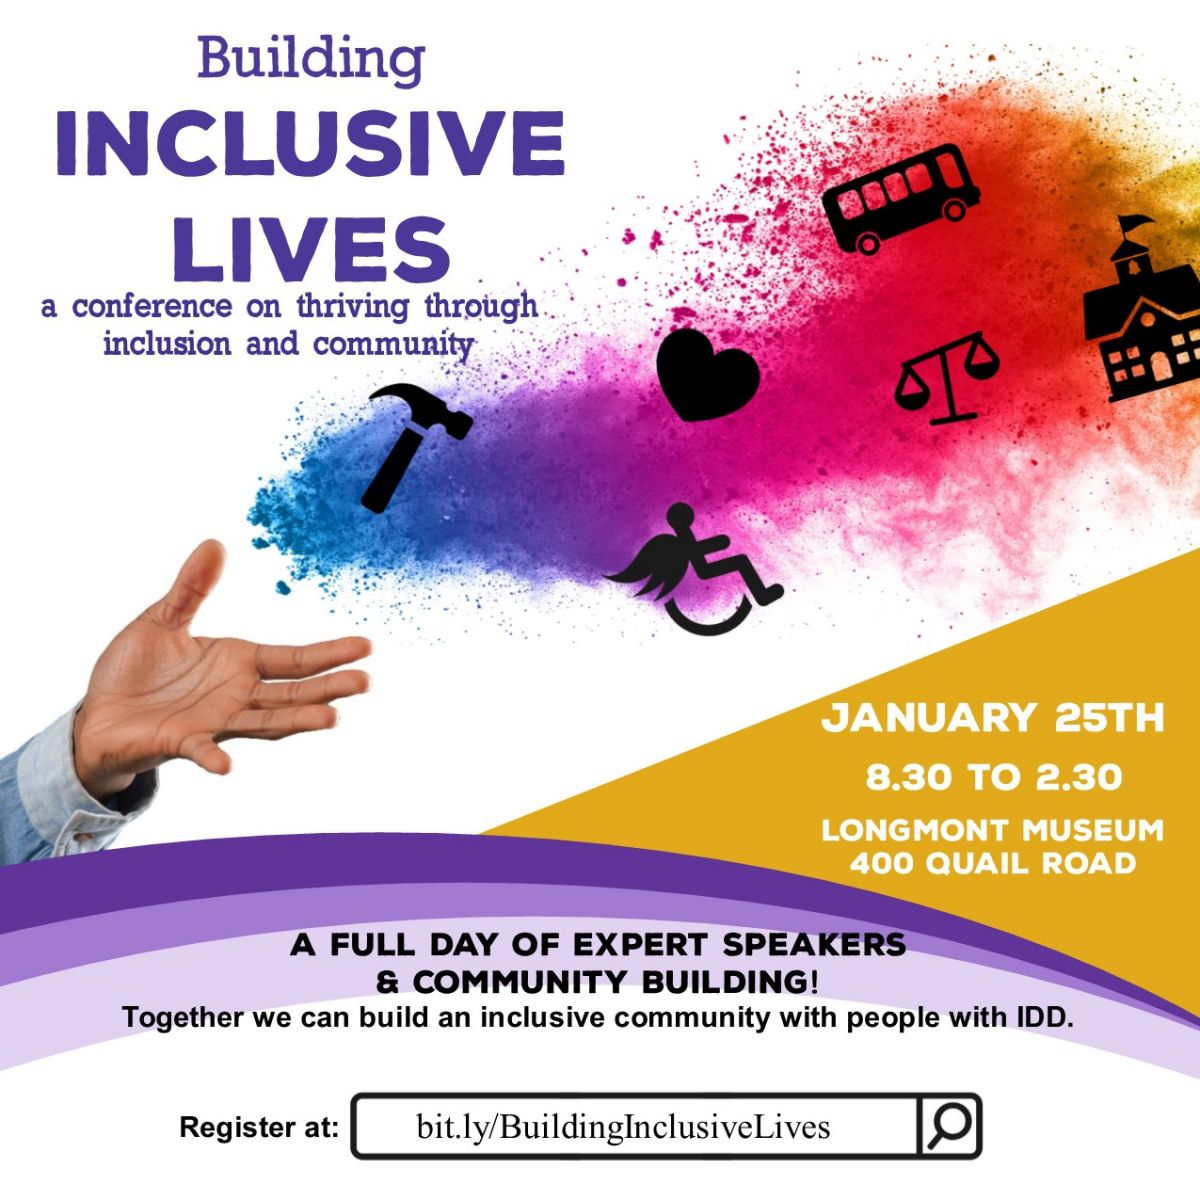 """Building Inclusive Lives"" – A Conference on Thriving through Inclusion and Community January 25"